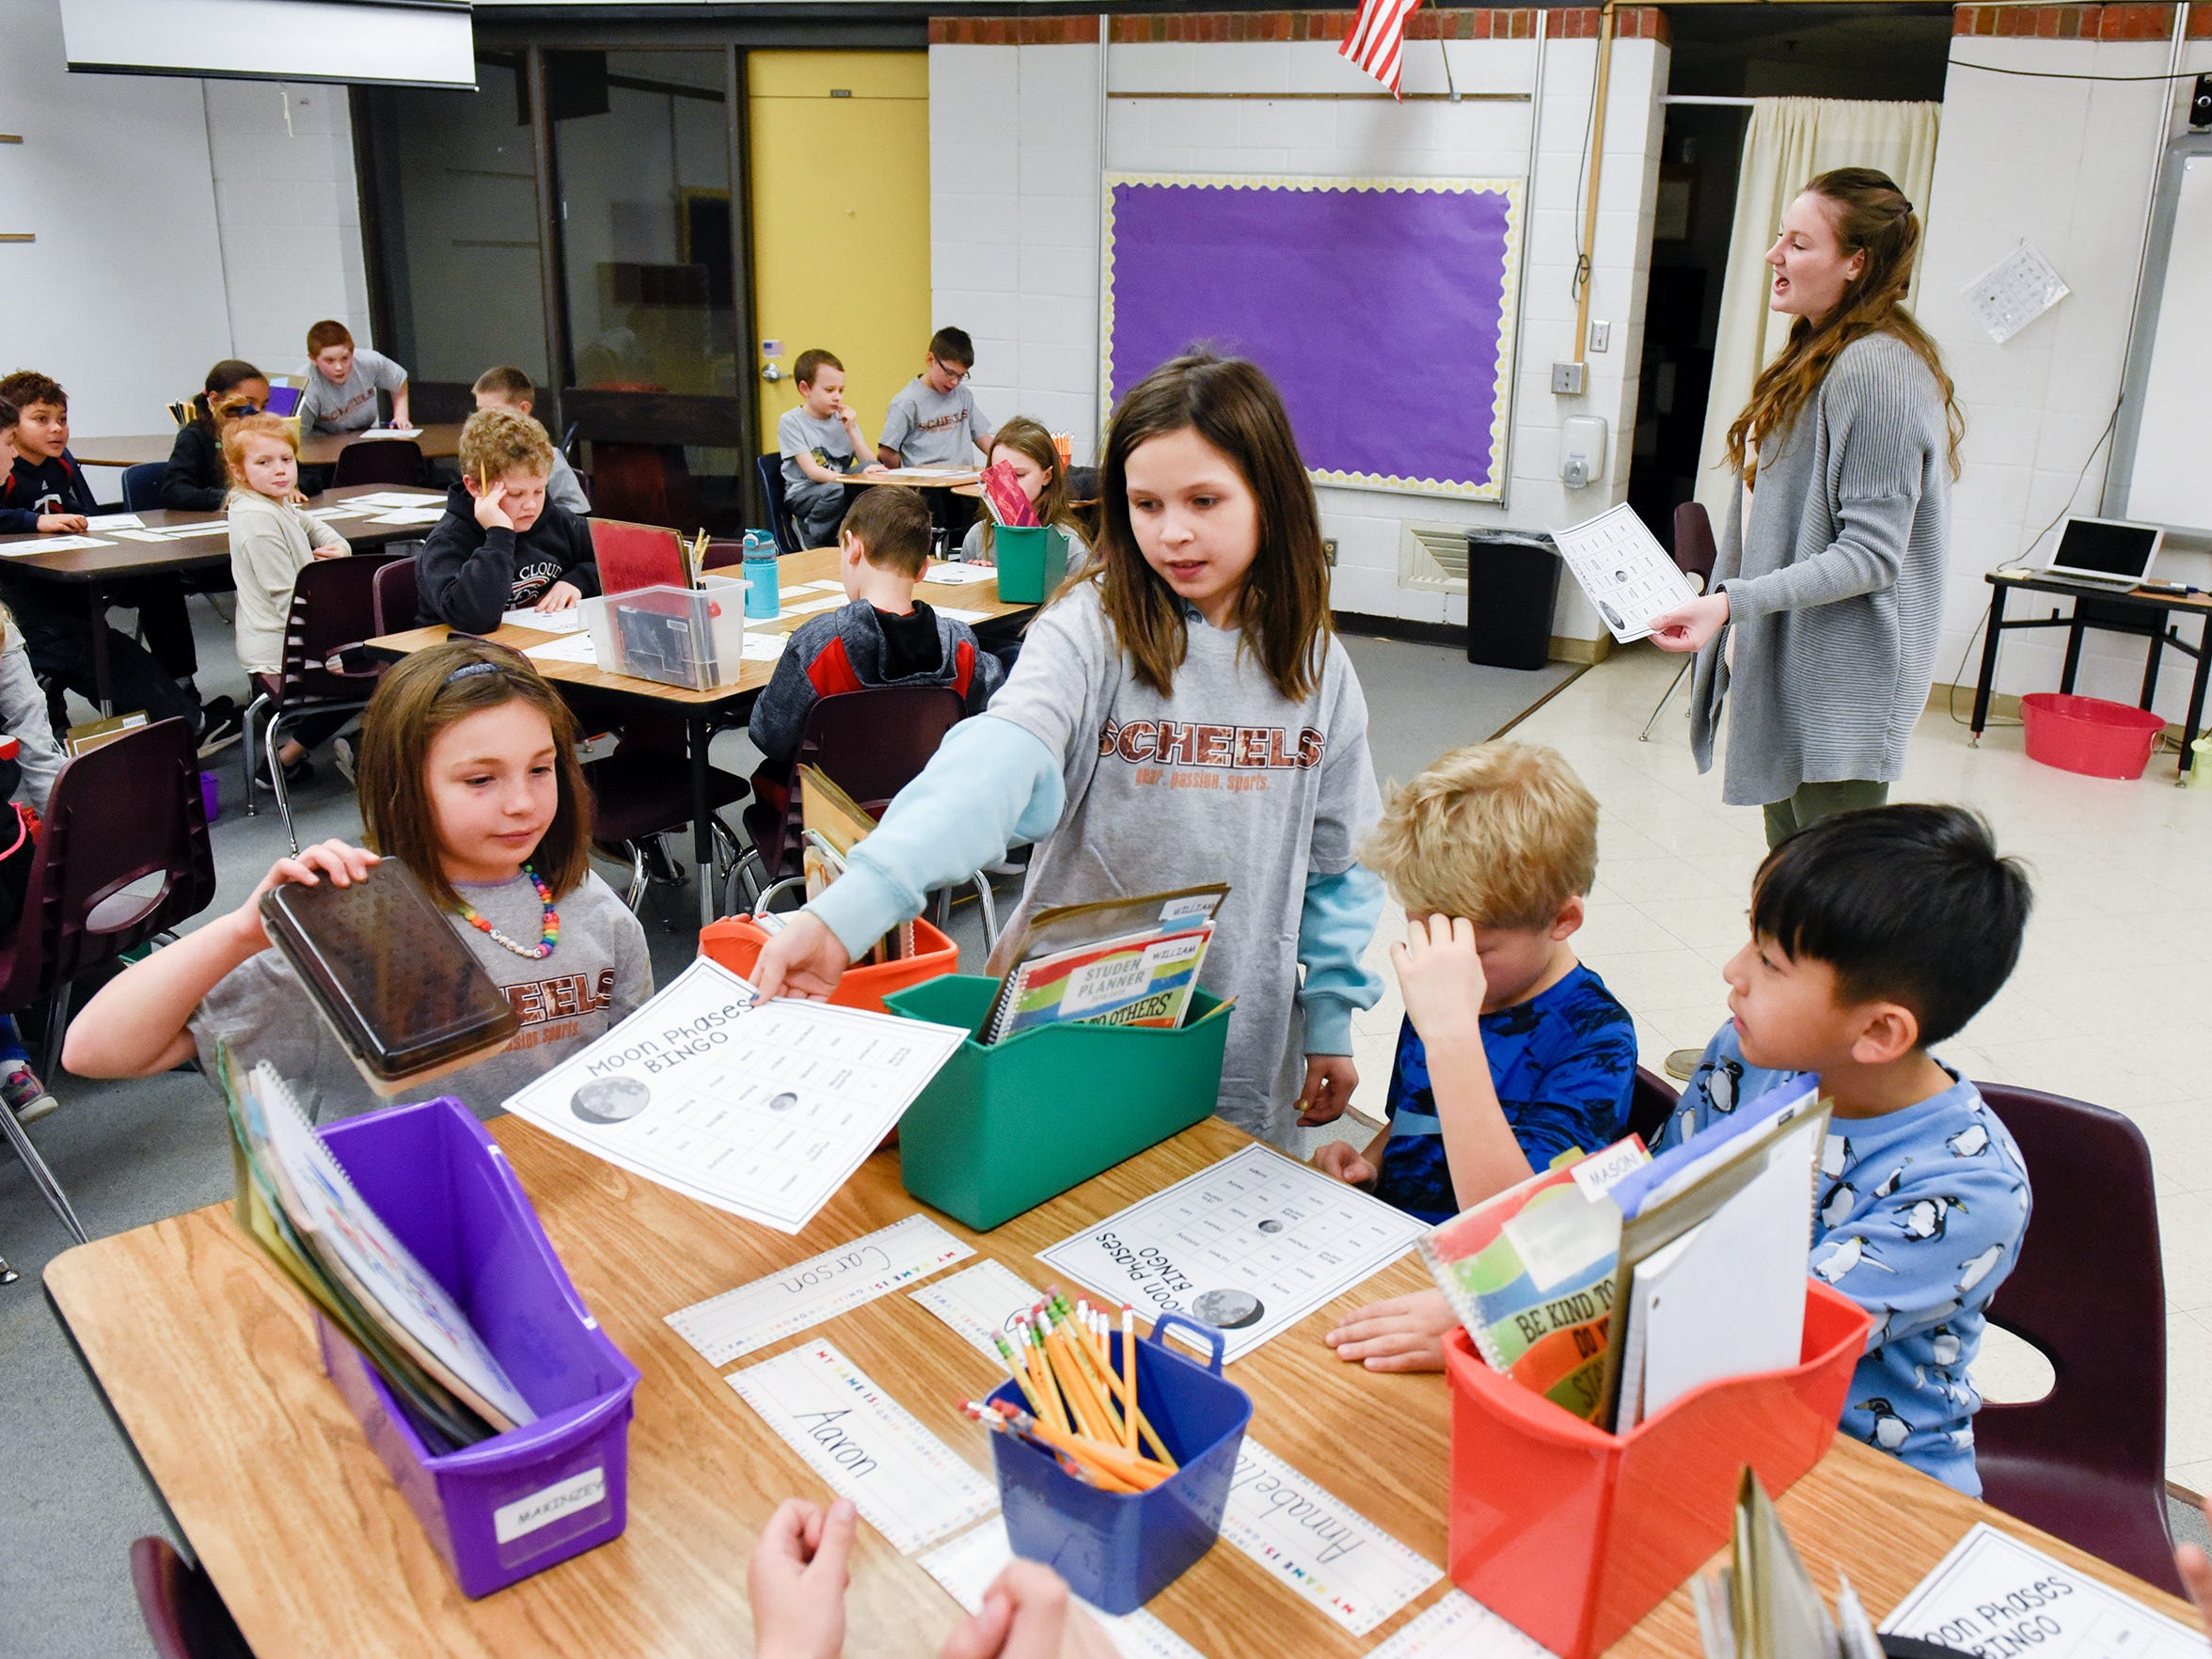 Teacher Emily Young gets her students started on a science game in their new classroom Tuesday, Jan. 15, after a fire damaged classrooms at Pleasantview Elementary School in Sauk Rapids.